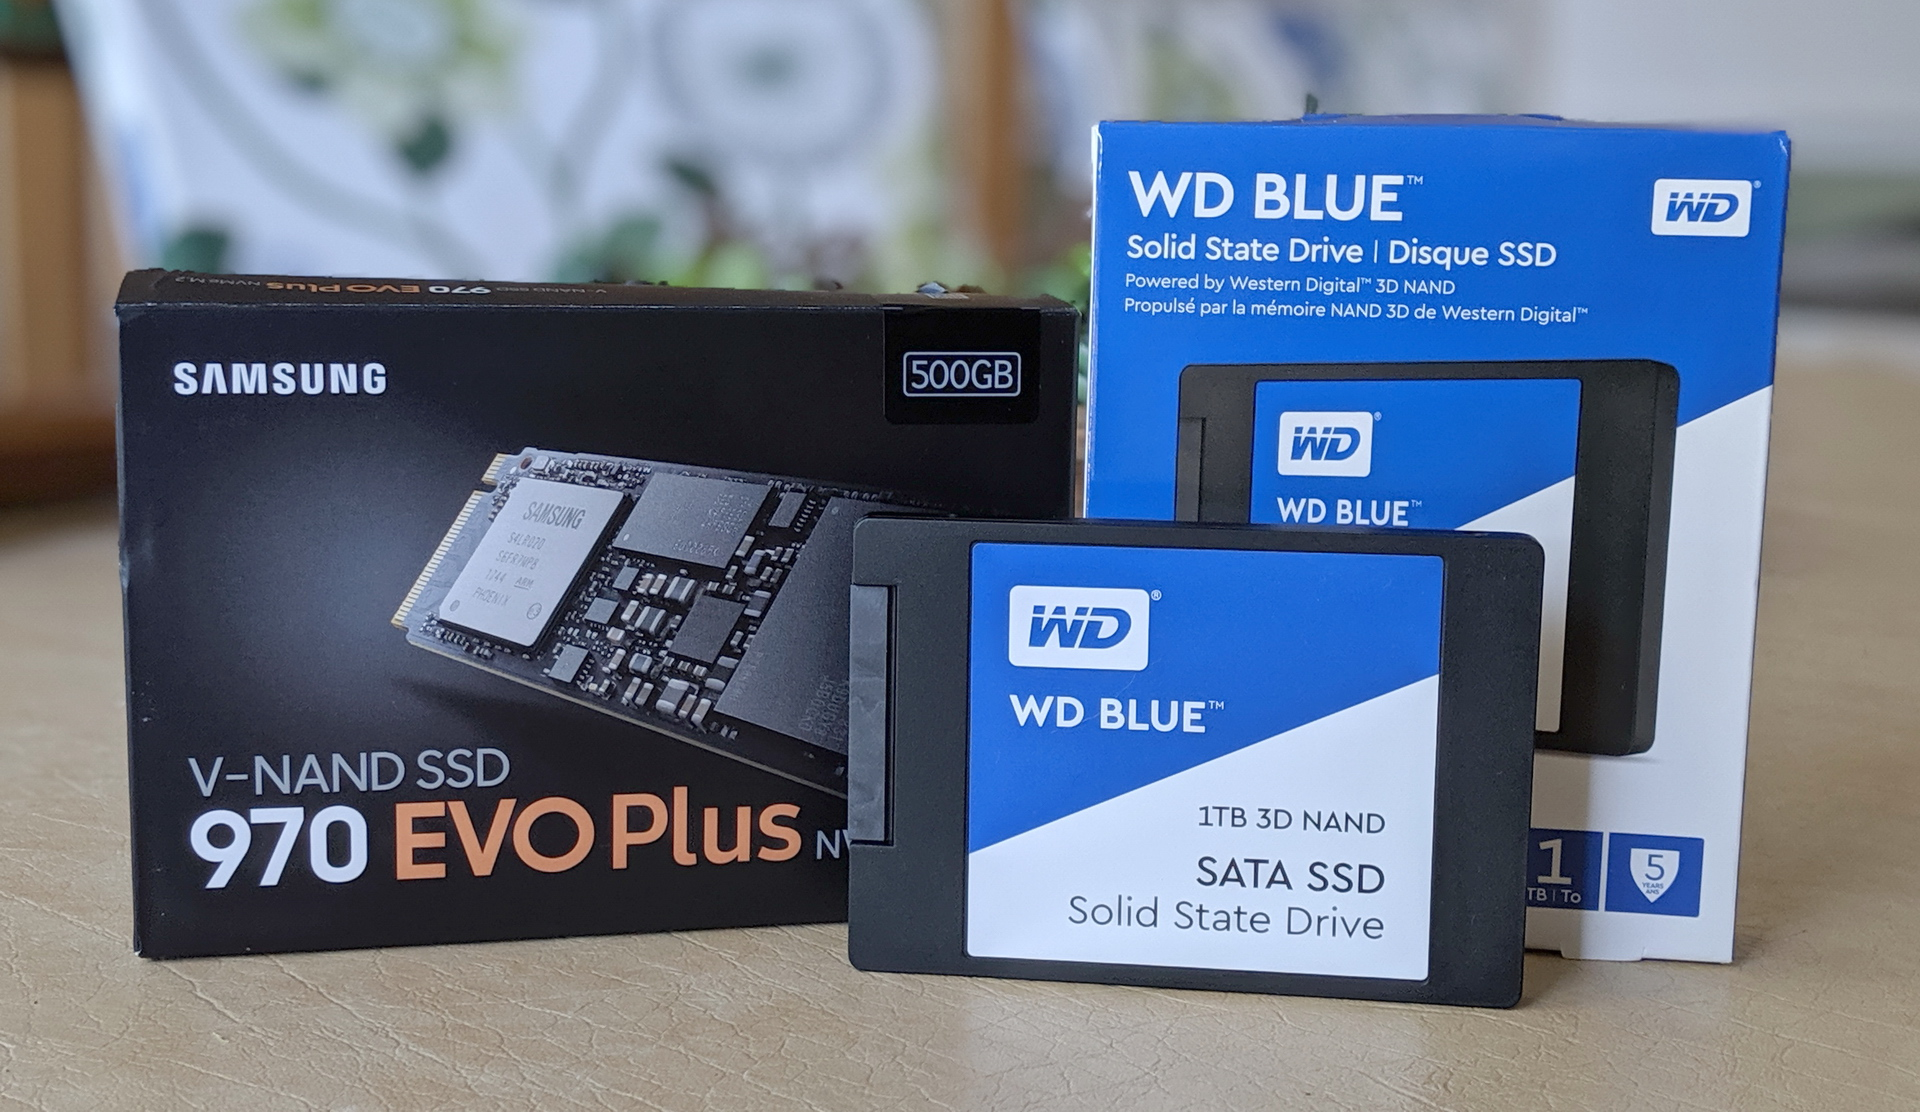 Samsung 970 EVO Plus 500GB SSD and WD Blue 1TB SSD